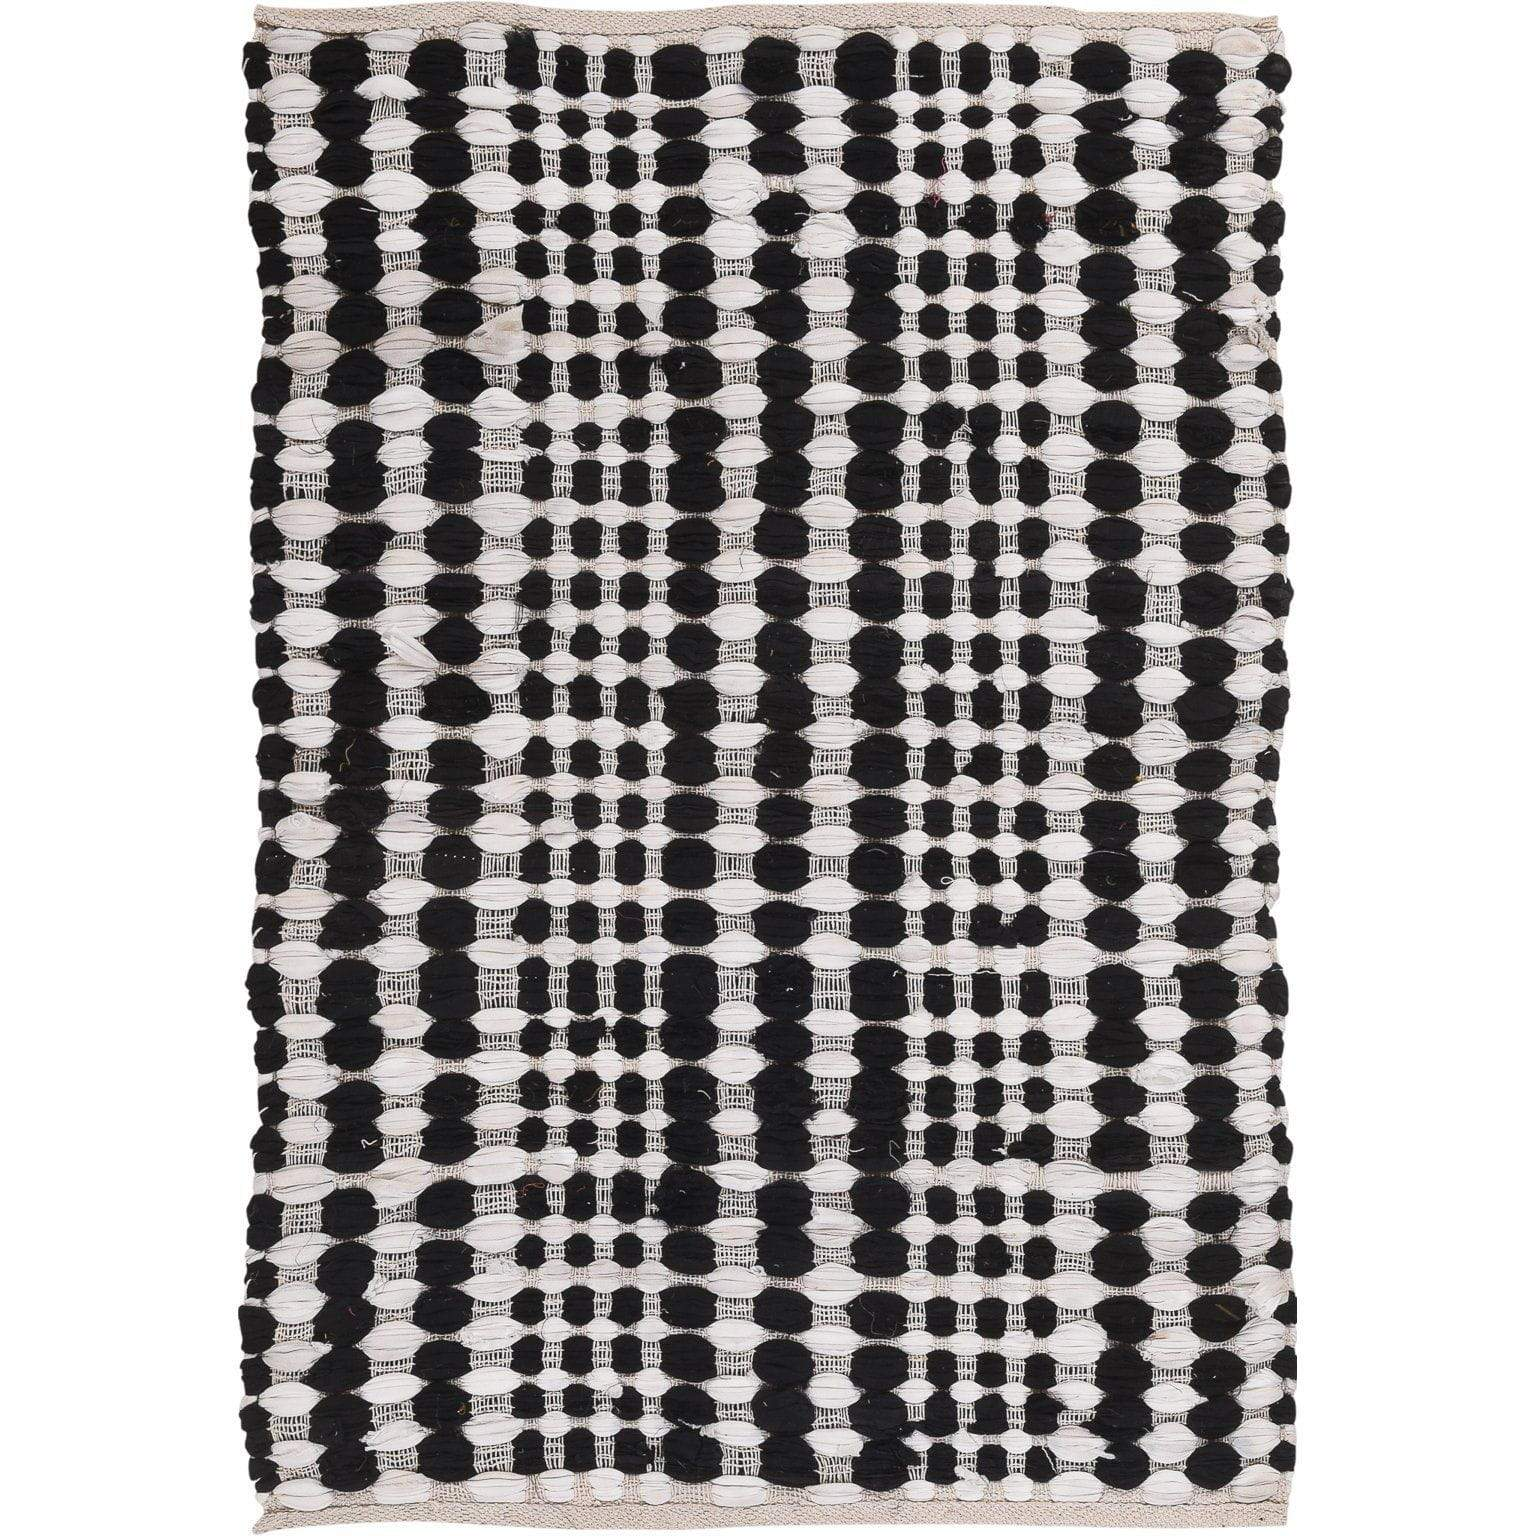 Ian Snow Ltd Black & White cotton Slub Rug